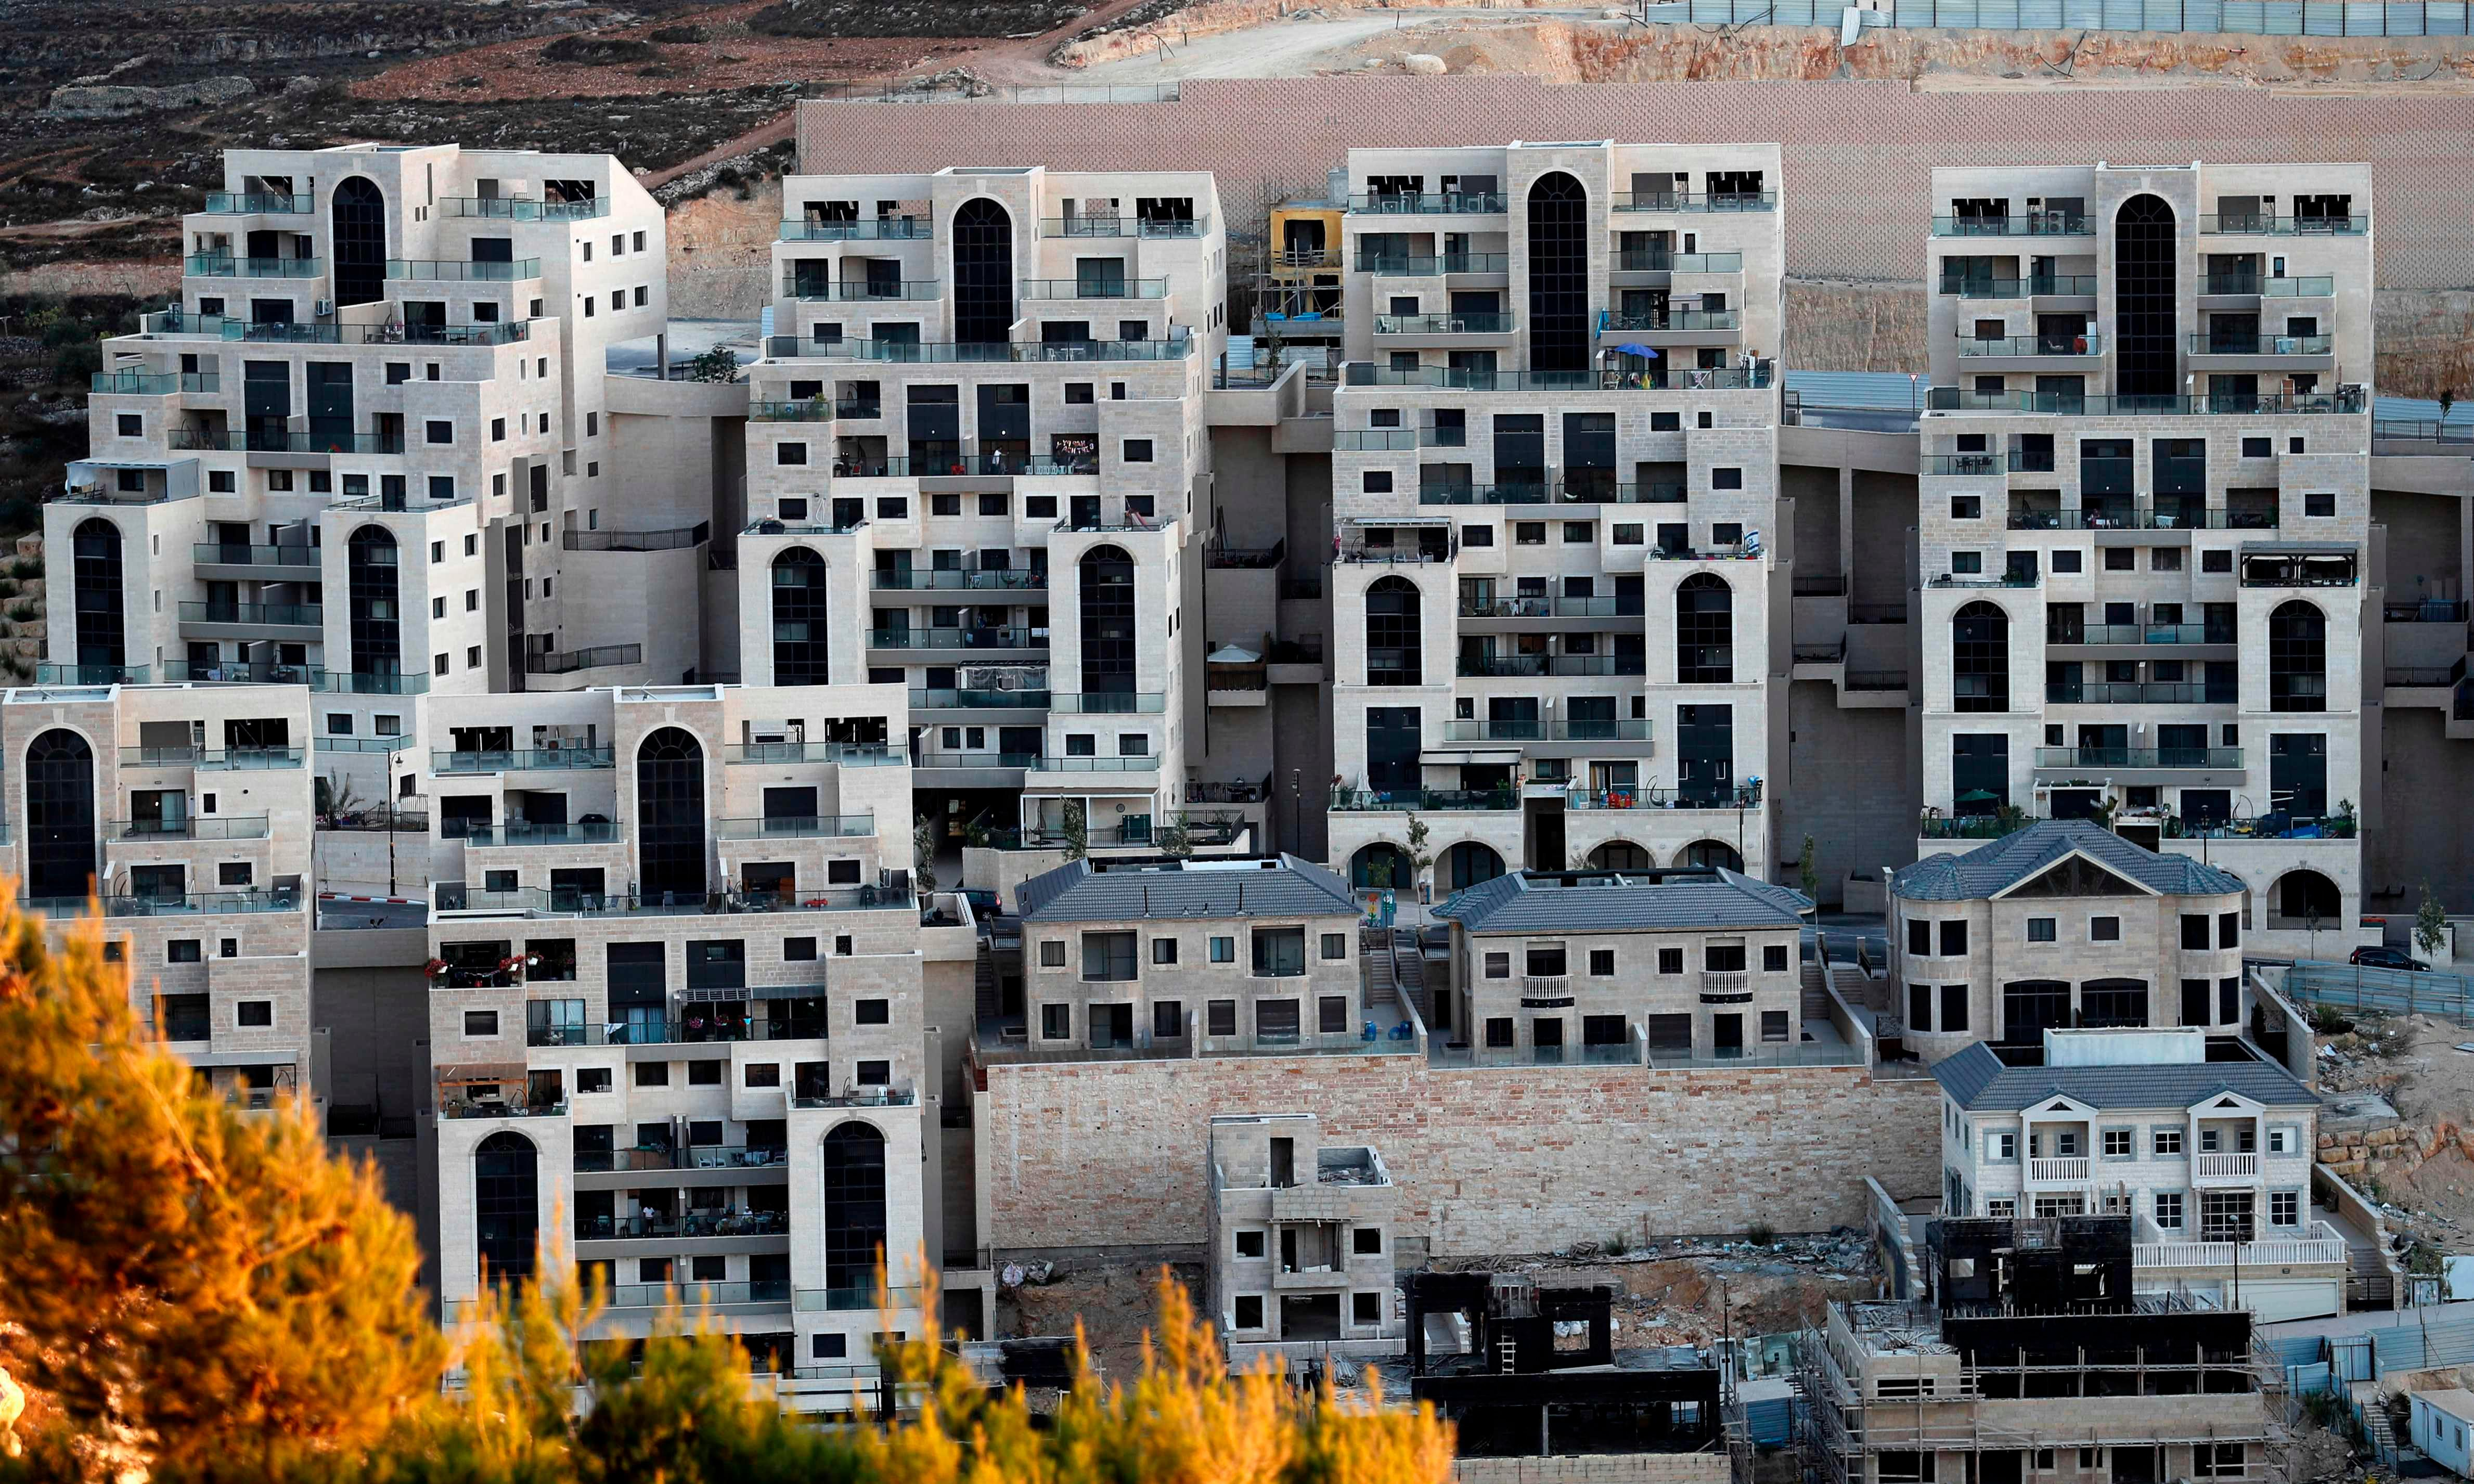 Products from Israeli settlements must be labelled, EU court rules